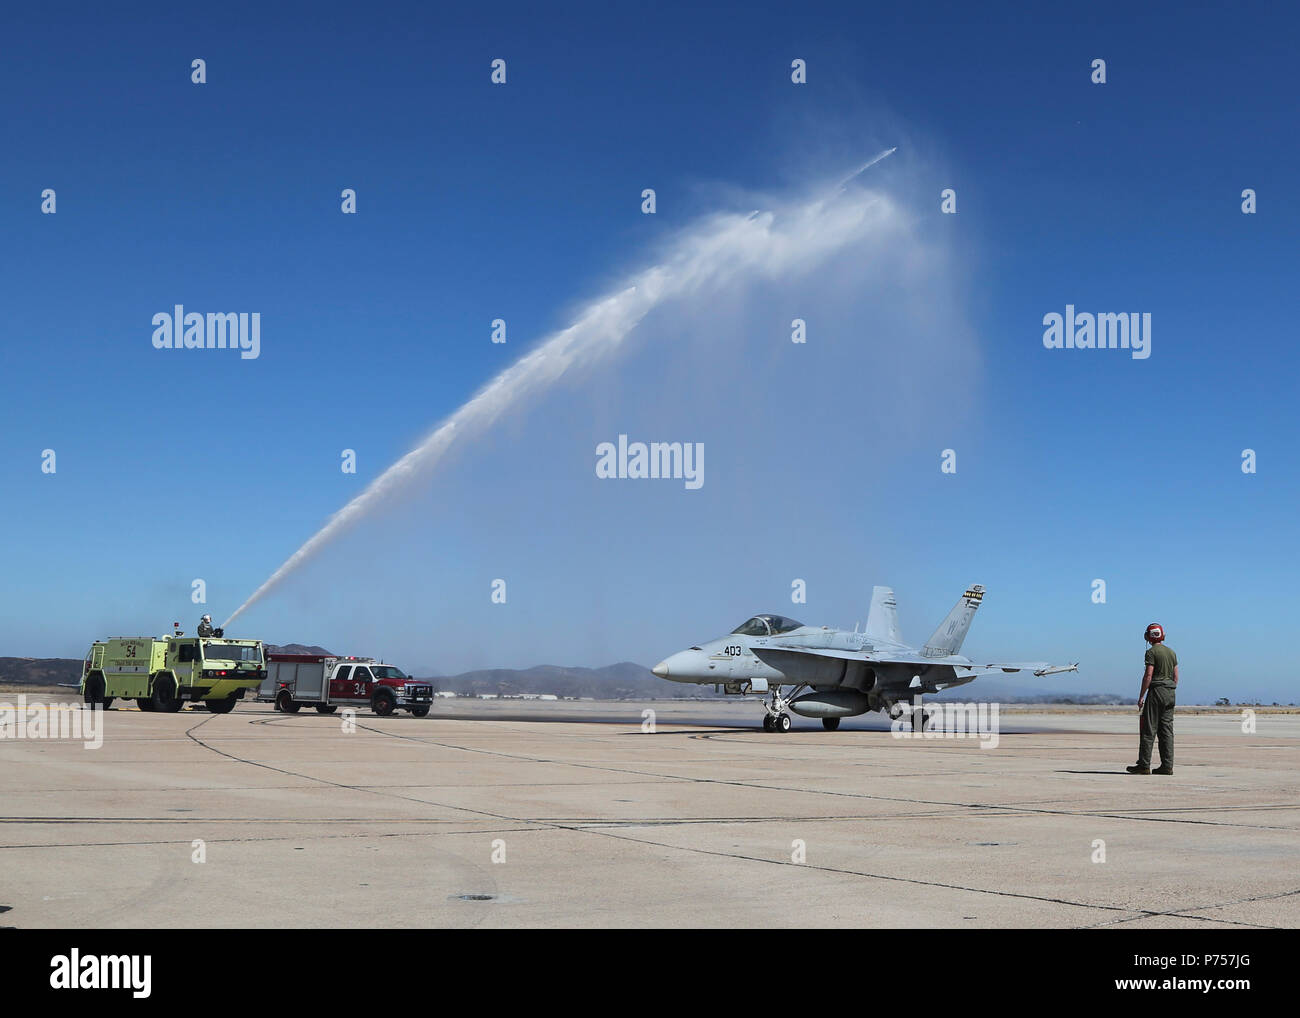 Maj. Gen. Mark R. Wise, the commanding general for 3rd Marine Aircraft Wing, is sprayed with water to celebrate his return from his final flight in an F/A-18C Hornet at Marine Corps Air Station Miramar, San Diego, Calif., July 02. Maj. Gen. Wise flew for the last time as the commanding general of 3rd MAW. (U.S. Marine Corps Photo by Cpl. Joshua S. McAlpine/Released) Stock Photo